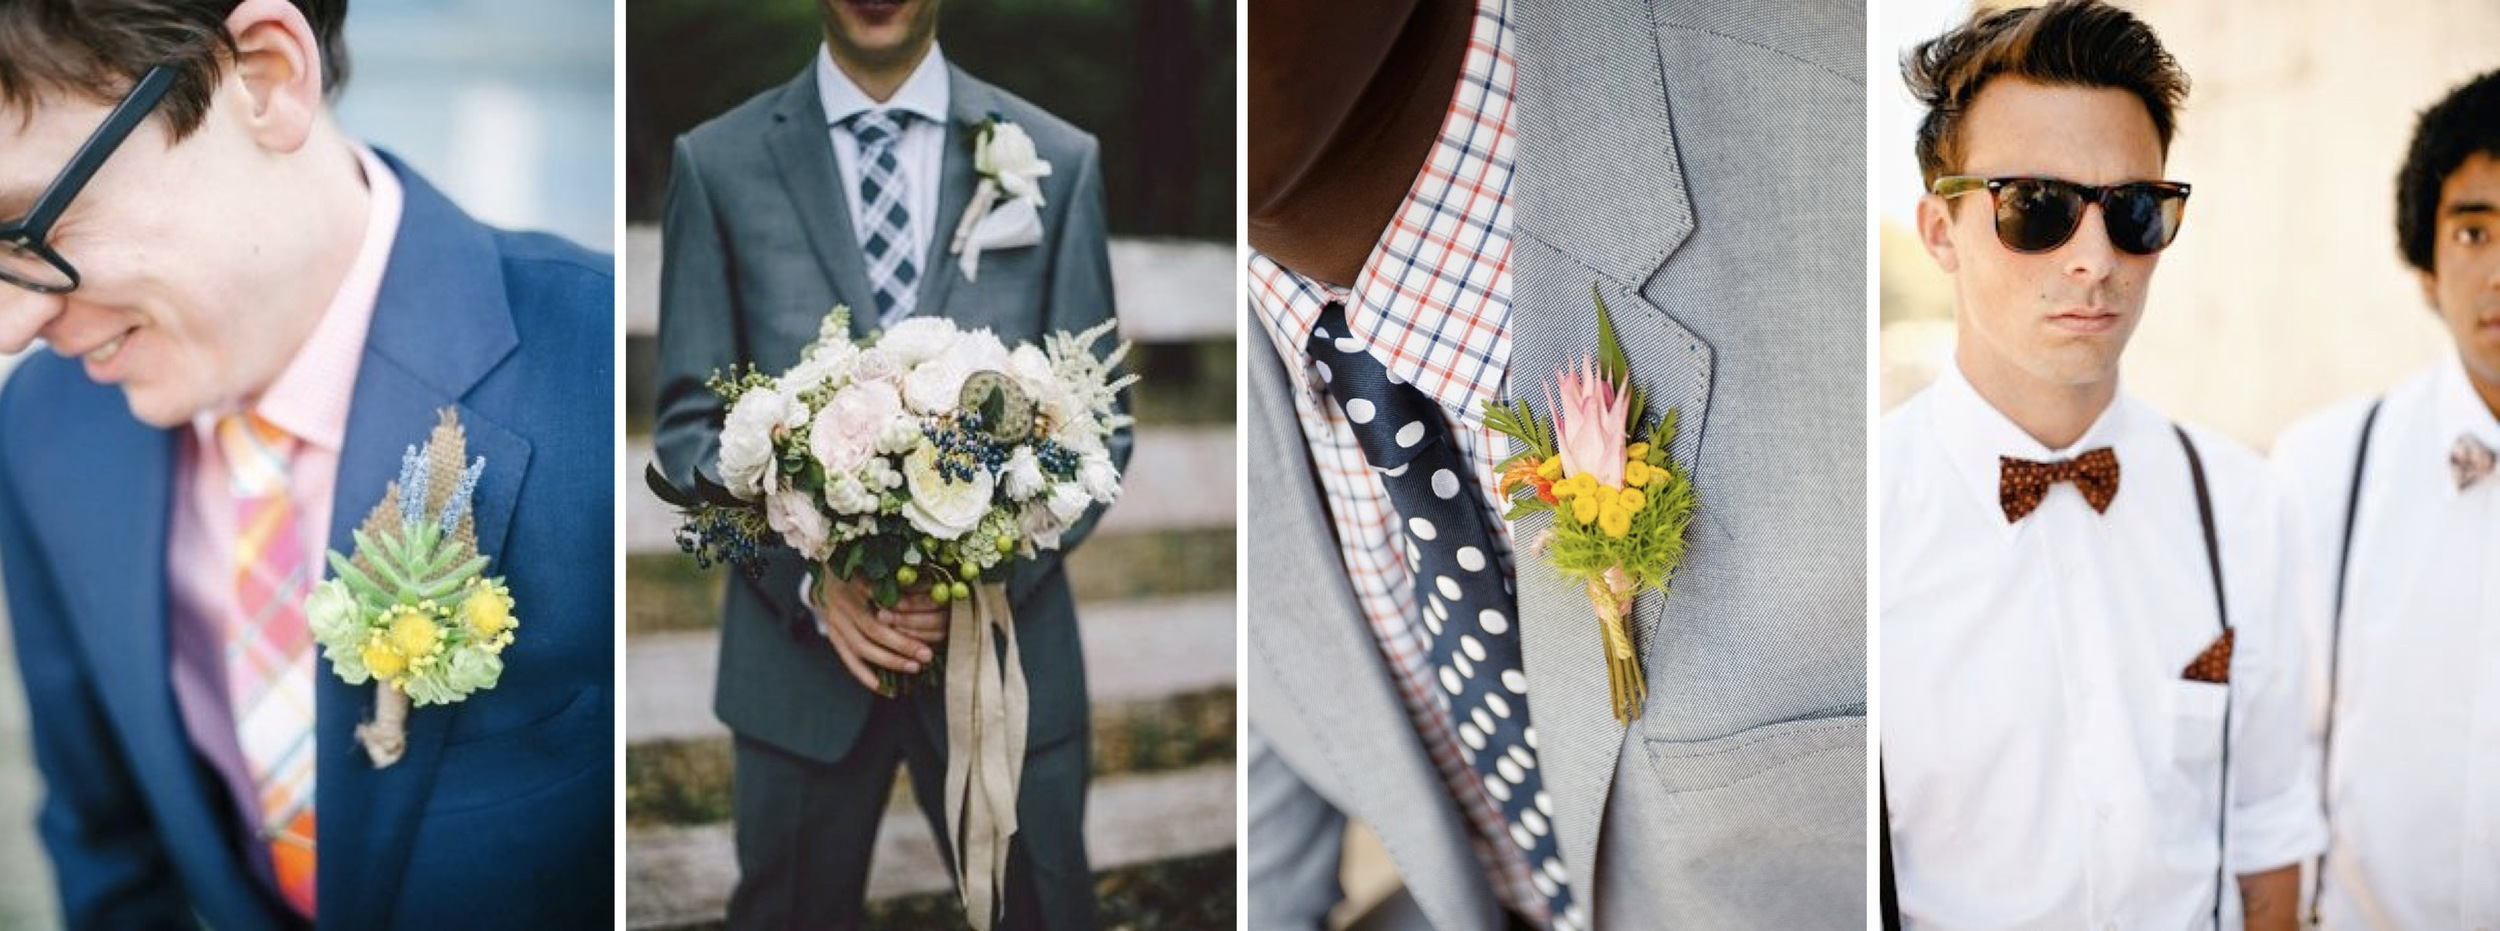 2014 Wedding Trends - Styled Grooms